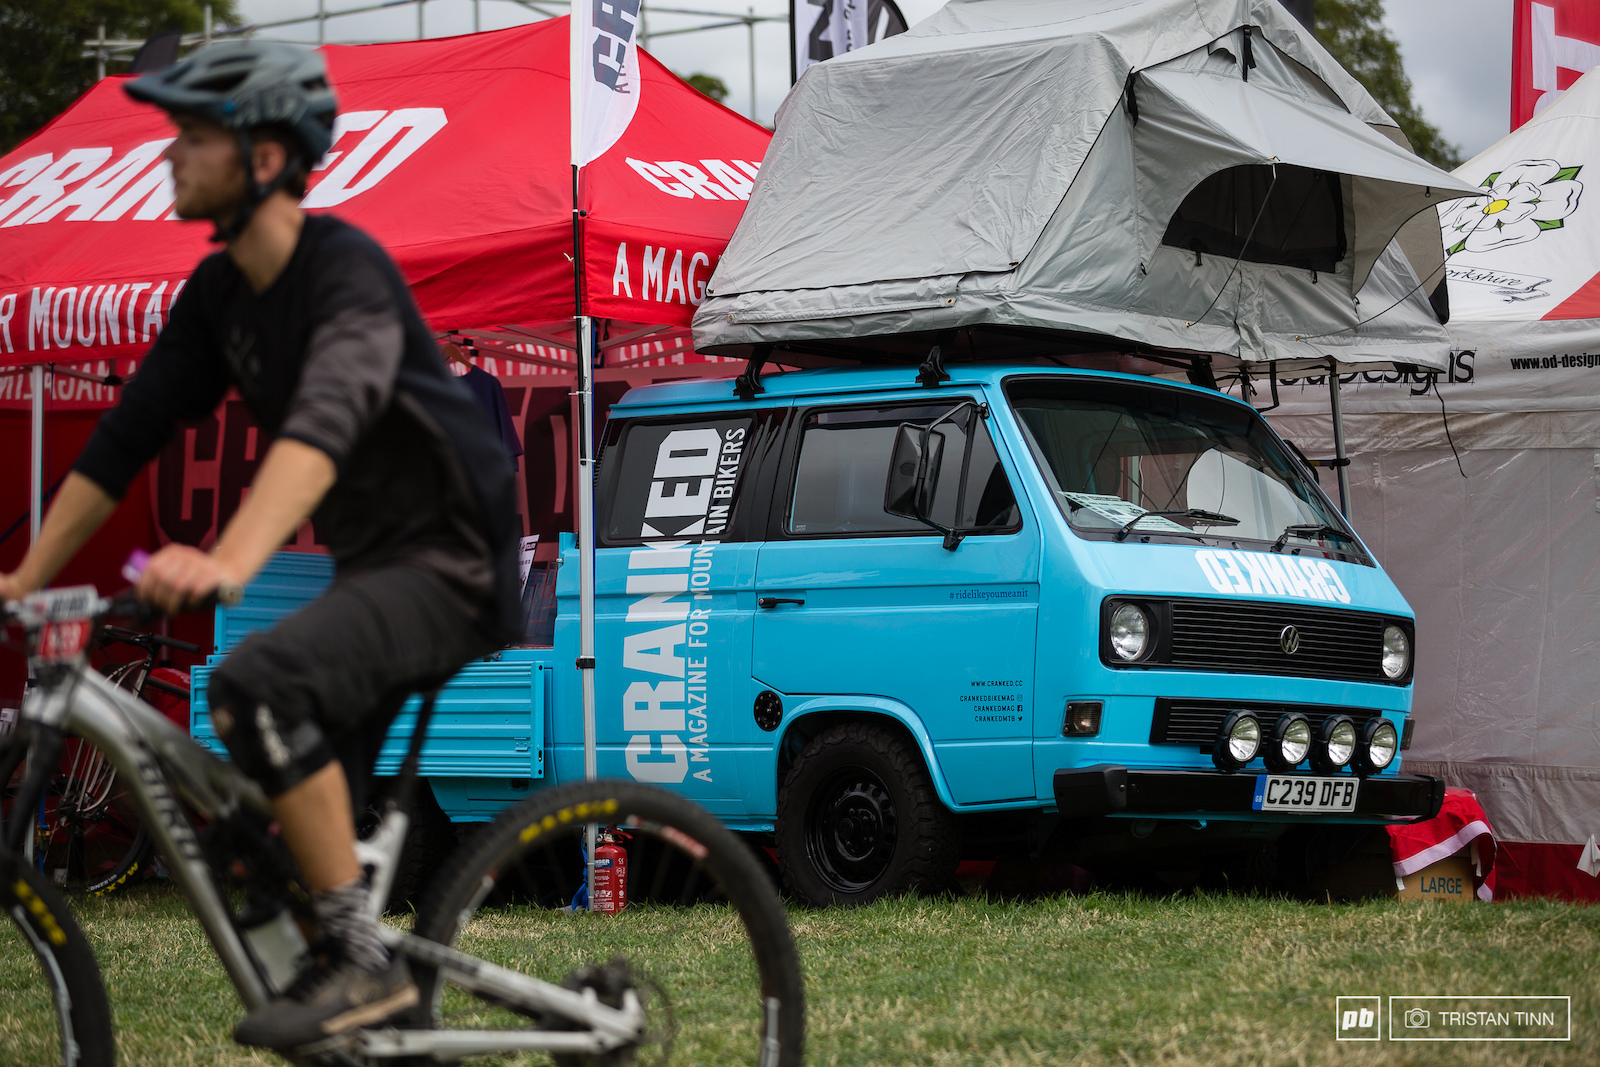 The trade expo had all sorts of delights on offer to keep bike fanatics and family happy on or off the trails